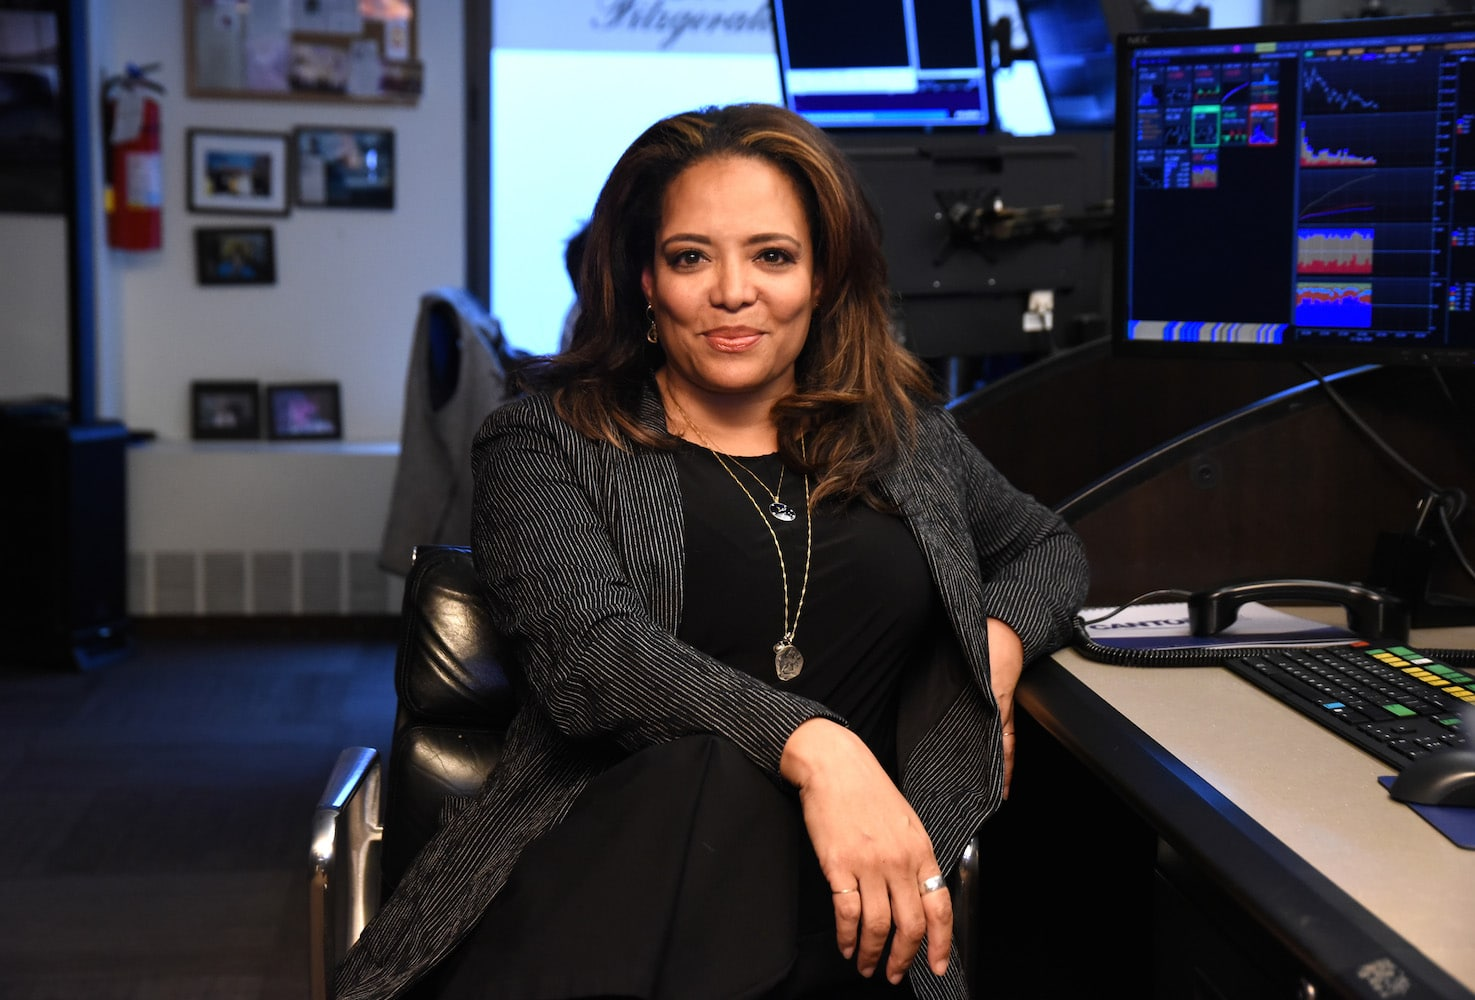 Luna Lauren Velez Returns to 'New York Undercover' for Reboot